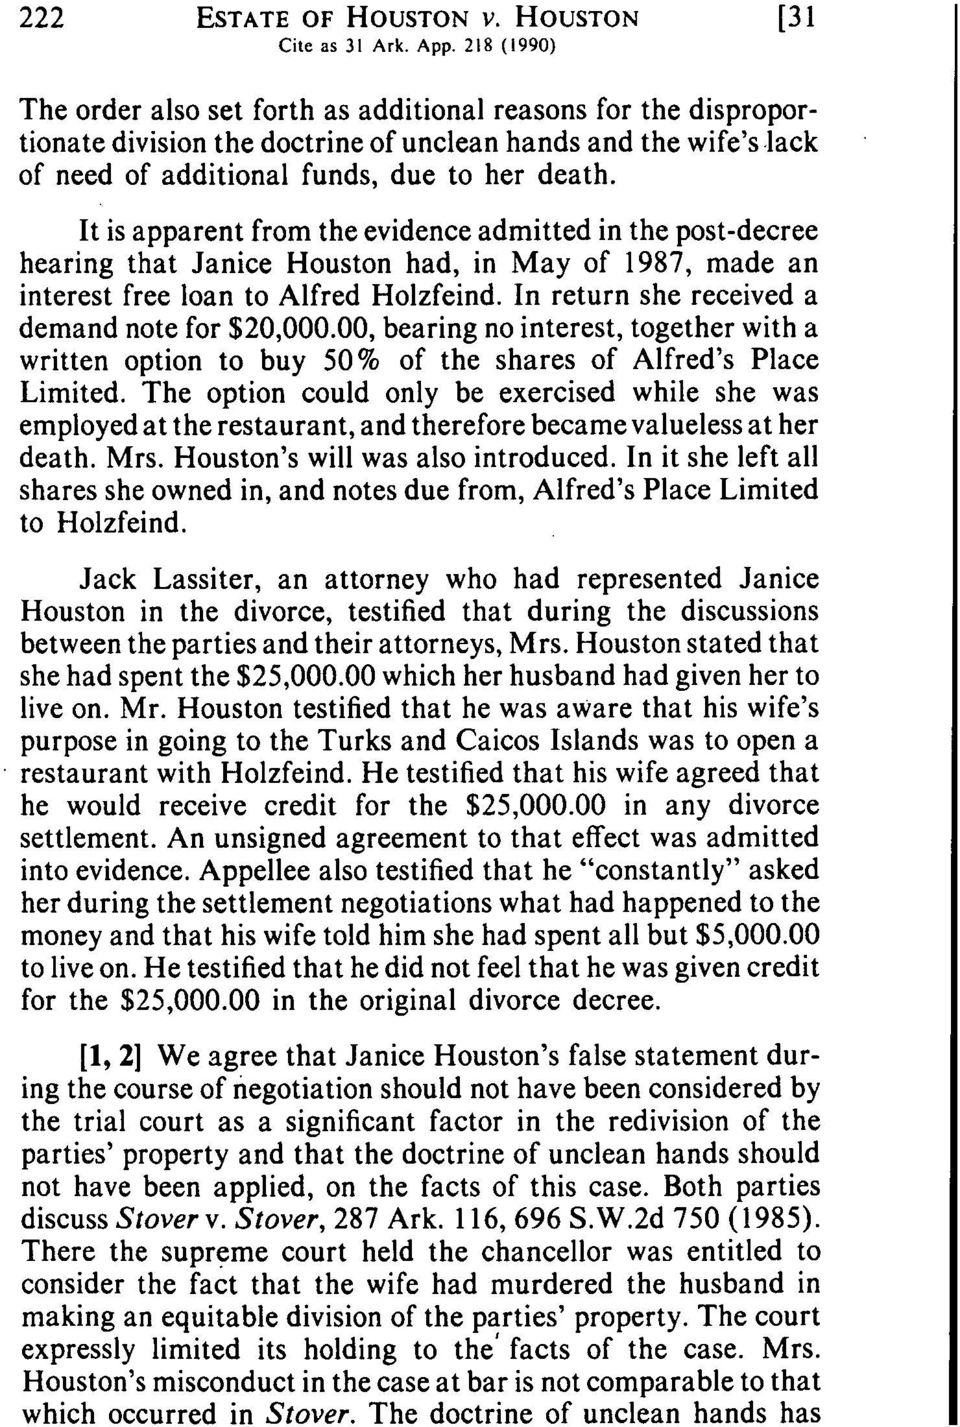 It is apparent from the evidence admitted in the post-decree hearing that Janice Houston had, in May of 1987, made an interest free loan to Alfred Holzfeind.